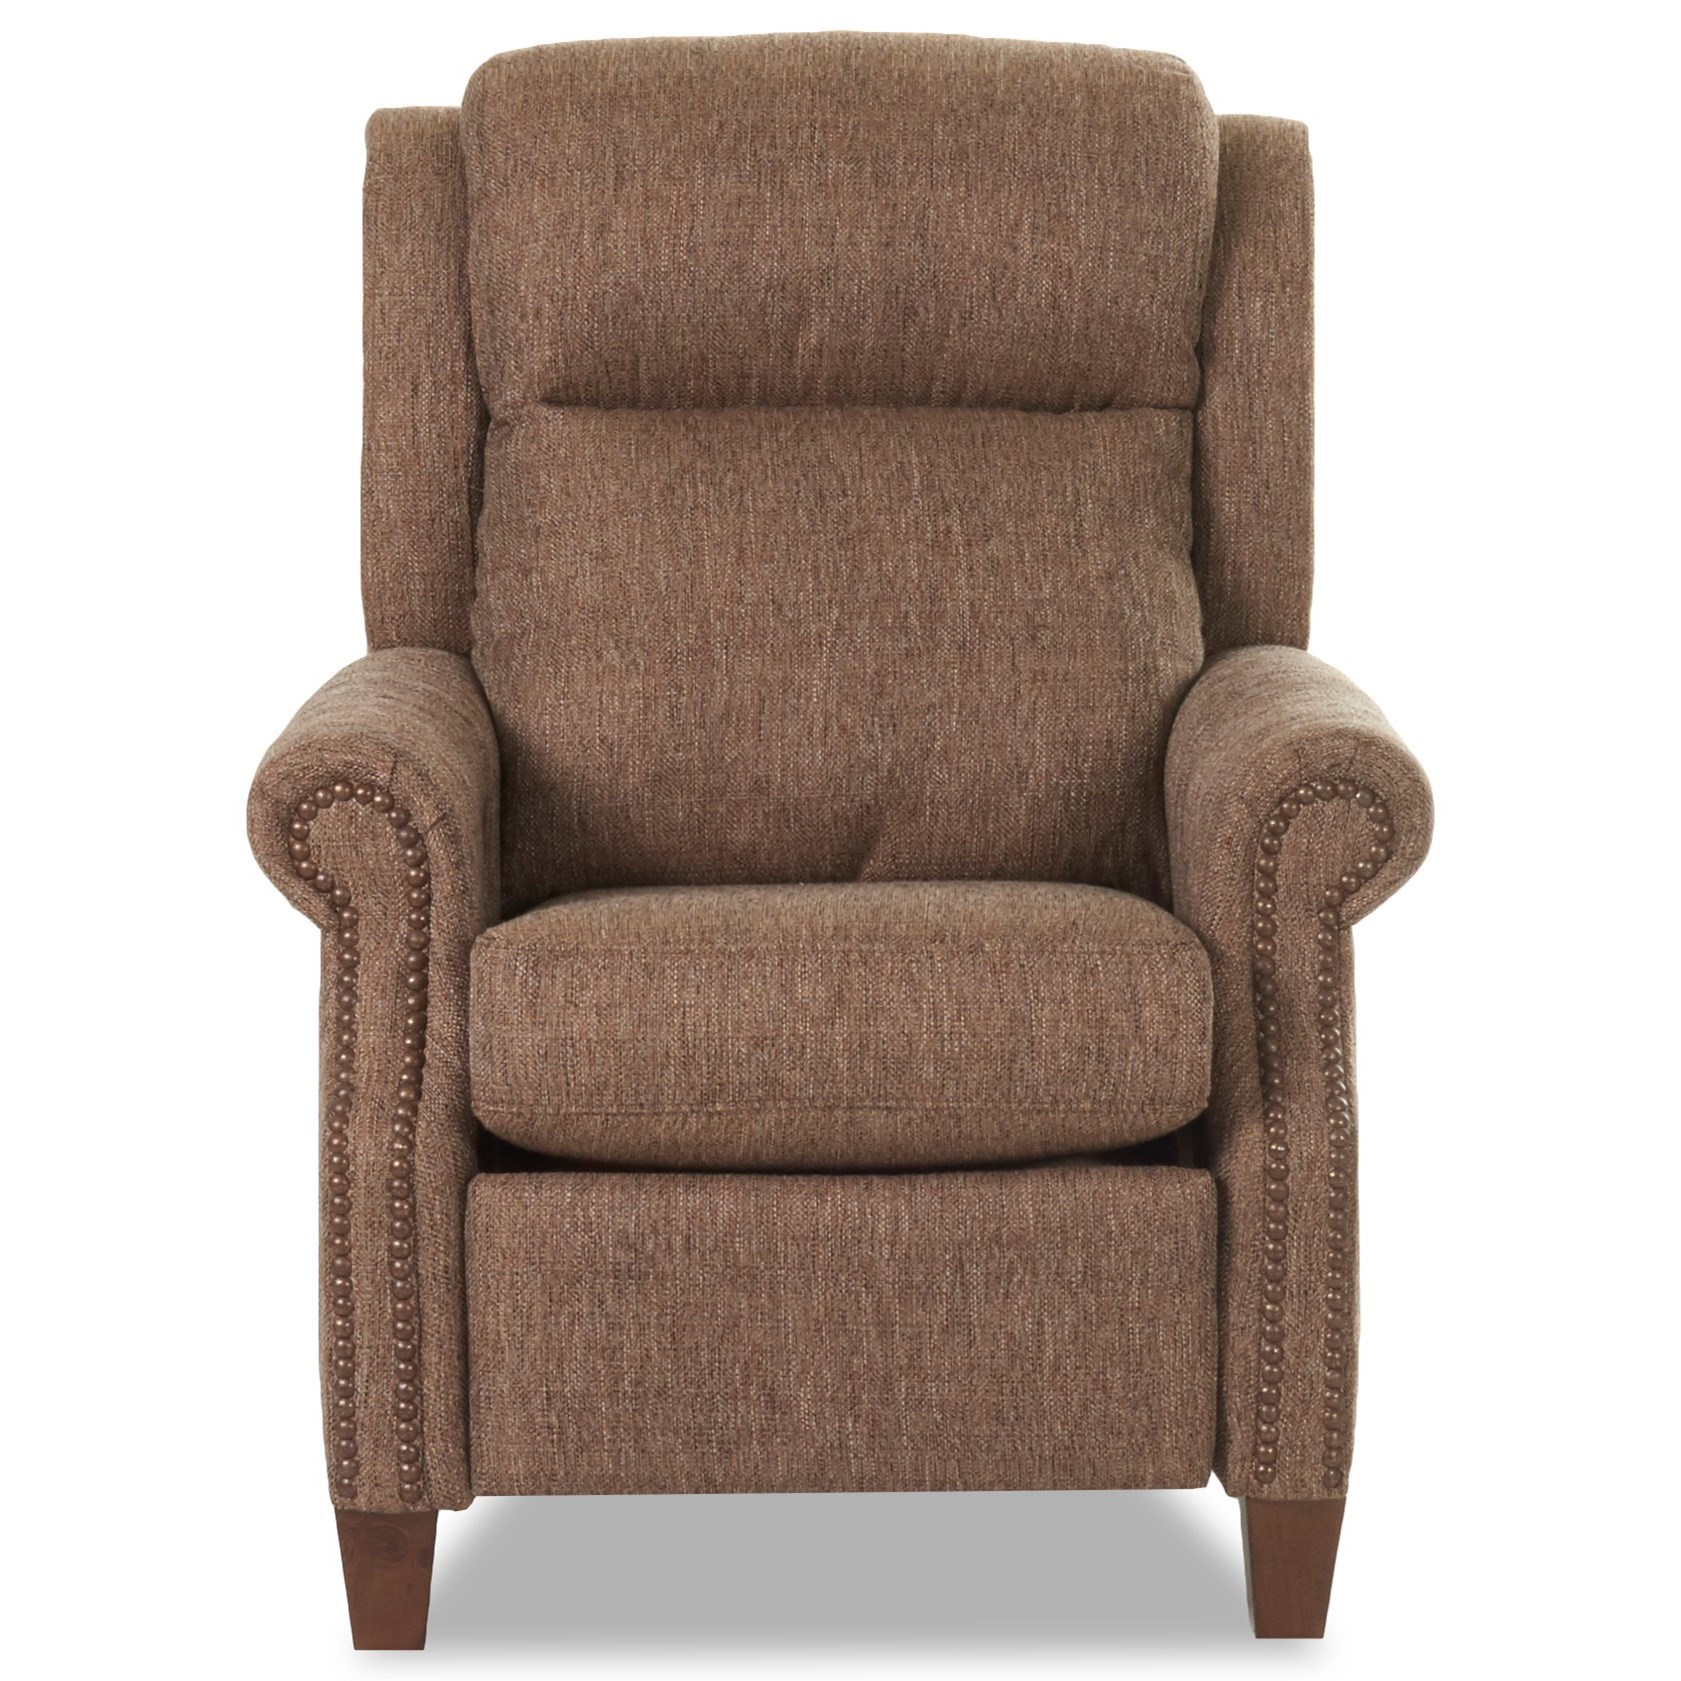 Gateway Power Recliner w/Nailheads, Pwr Head, Massag by Klaussner at Johnny Janosik